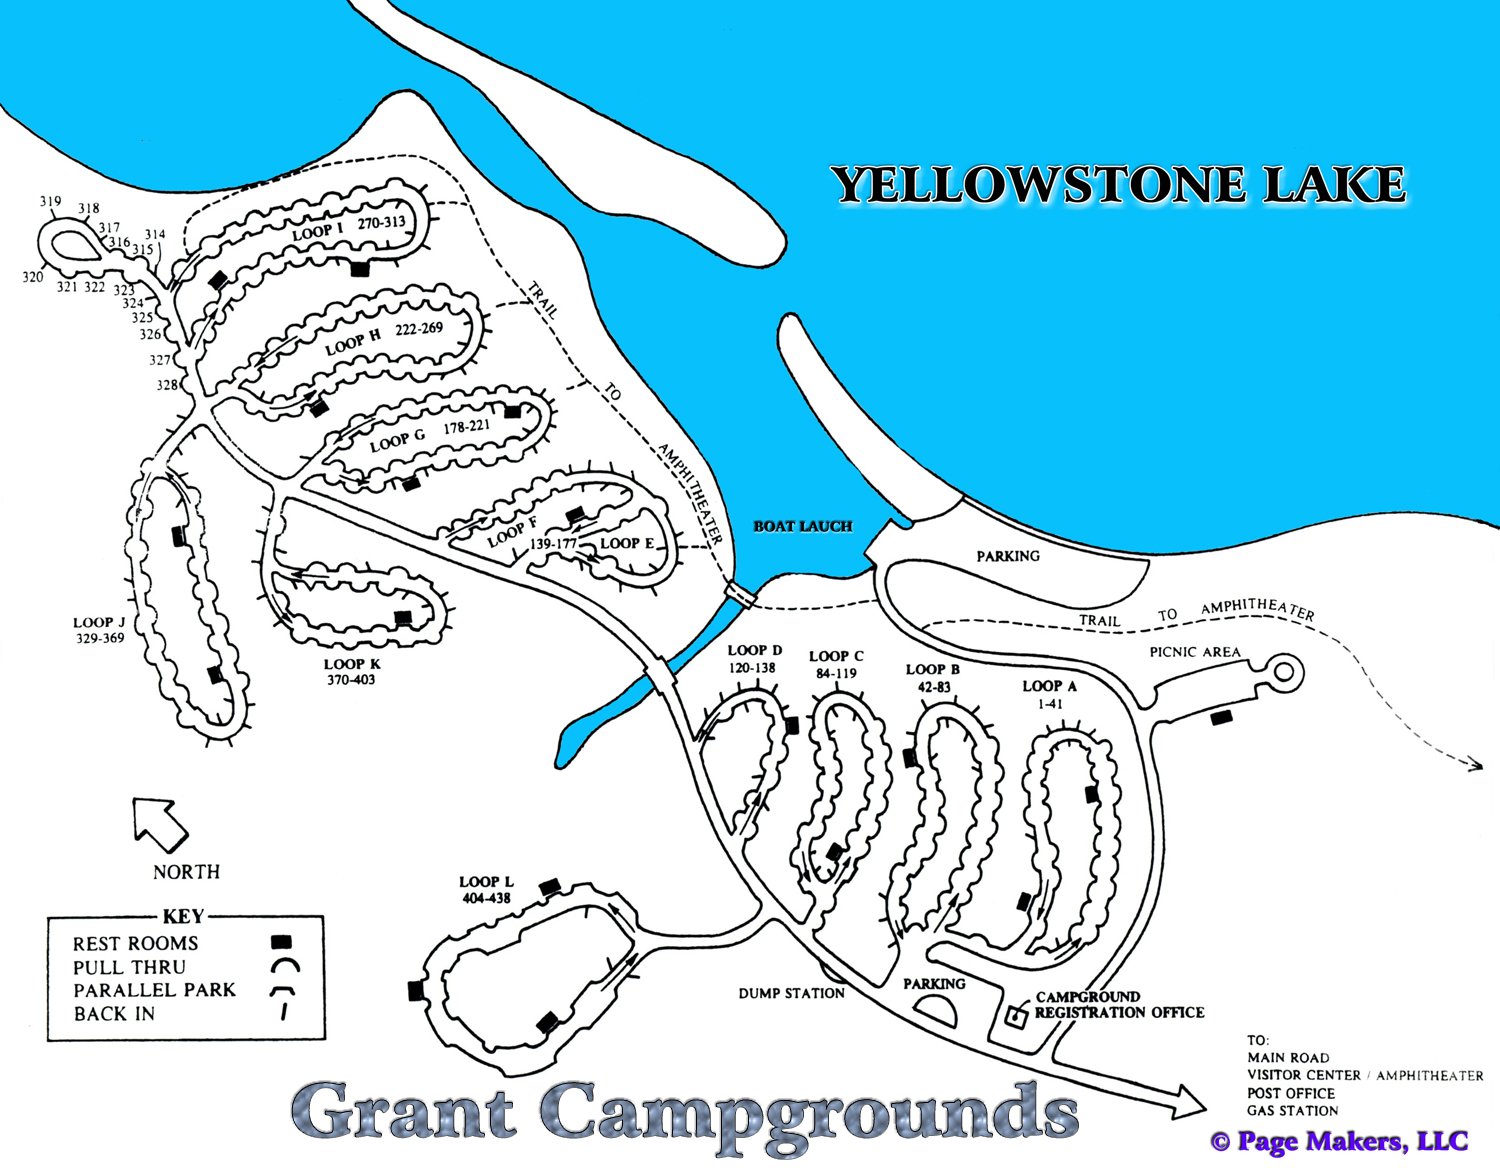 Grant Campground Map, Pictures and Video Yellowstone National Park on boundary waters campsite map, yellowstone activities, lodgepole campsite map, lewis and clark campsite map, yellowstone attractions, grant campsite map, great smoky mountains campsite map, california campsite map, yellowstone history, everglades campsite map, isle royale campsite map, sequoia campsite map, sunset beach campsite map, colorado campsite map, yosemite campsite map, glacier national park campsite map, yellowstone campground rates, itasca campsite map, wilderness campsite map, city of rocks campsite map,